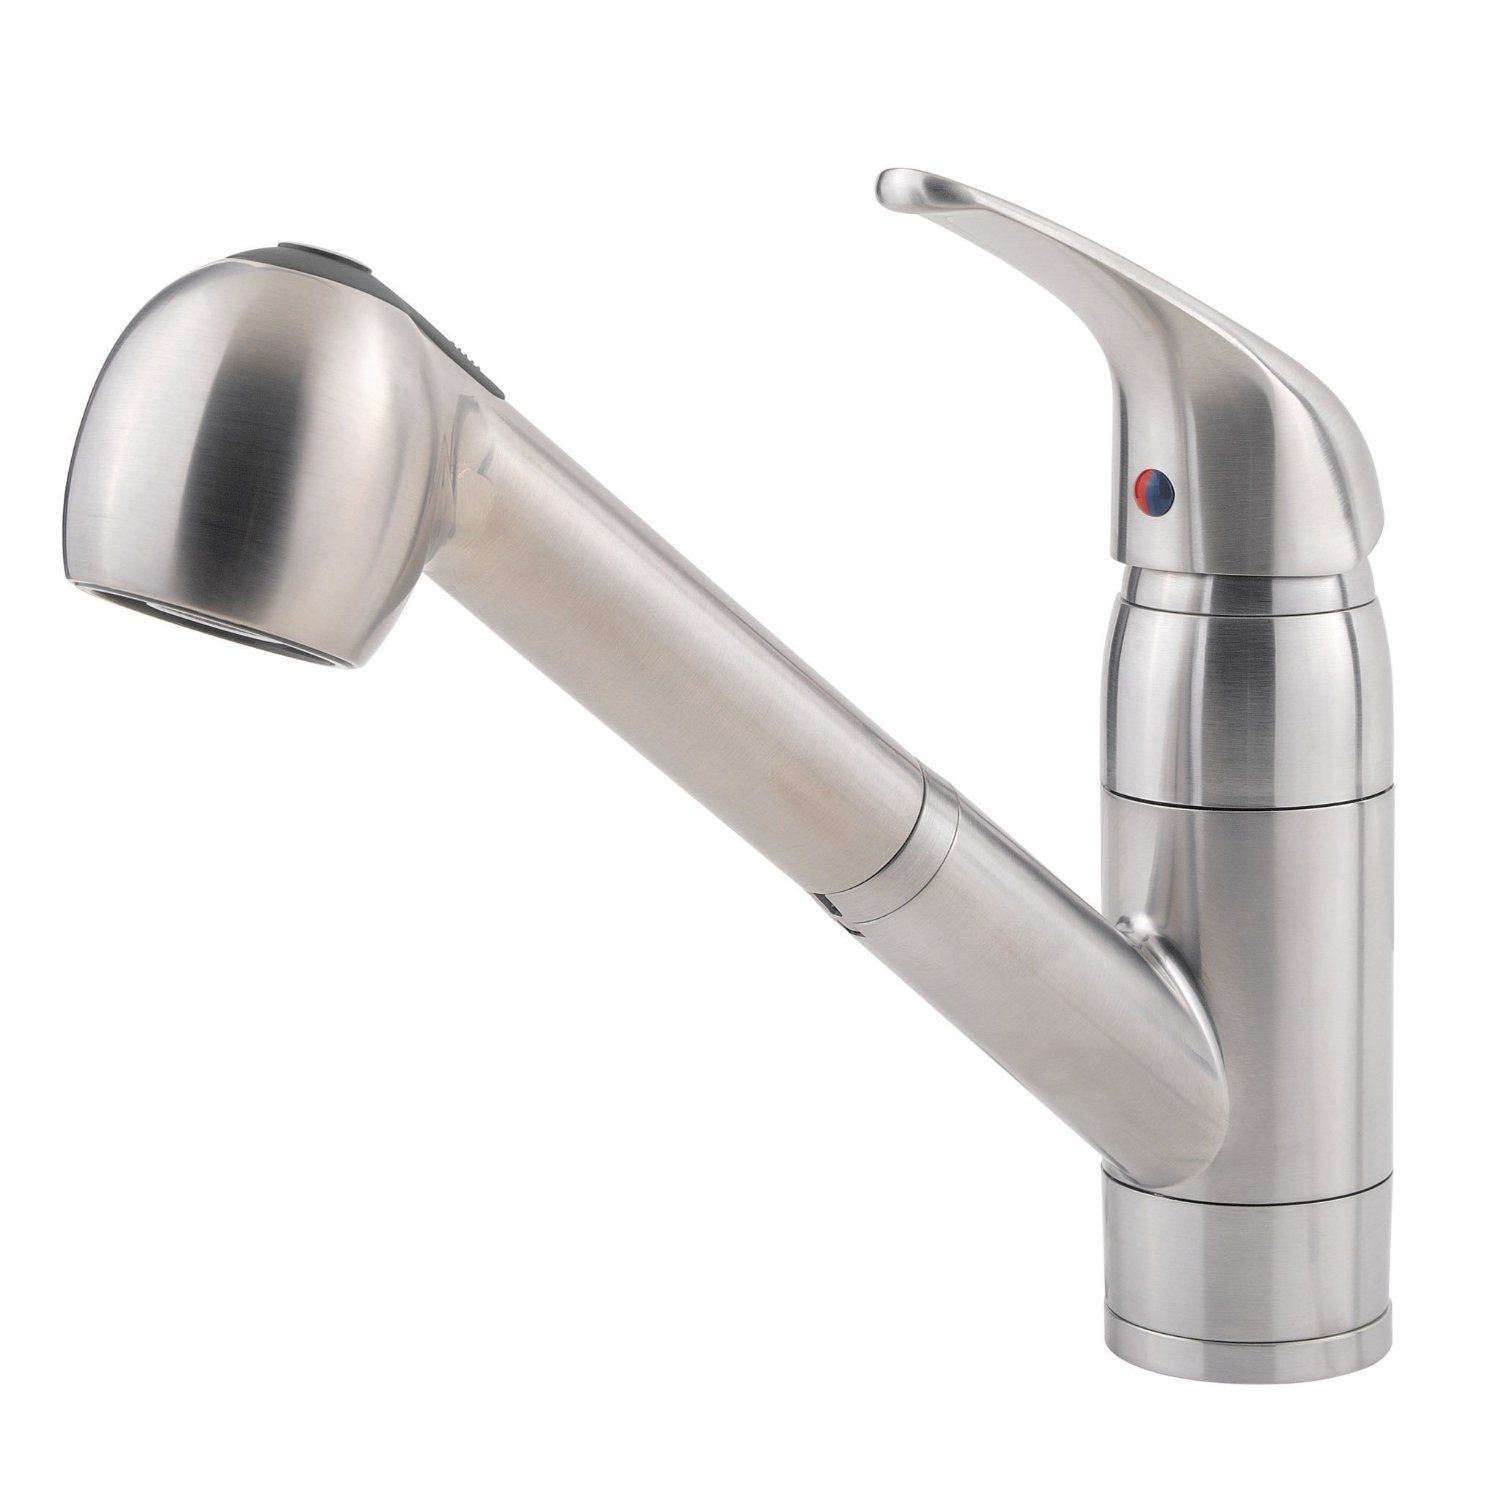 Pfister Pfirst Series 1-Handle Pull-Out Kitchen Faucet Review